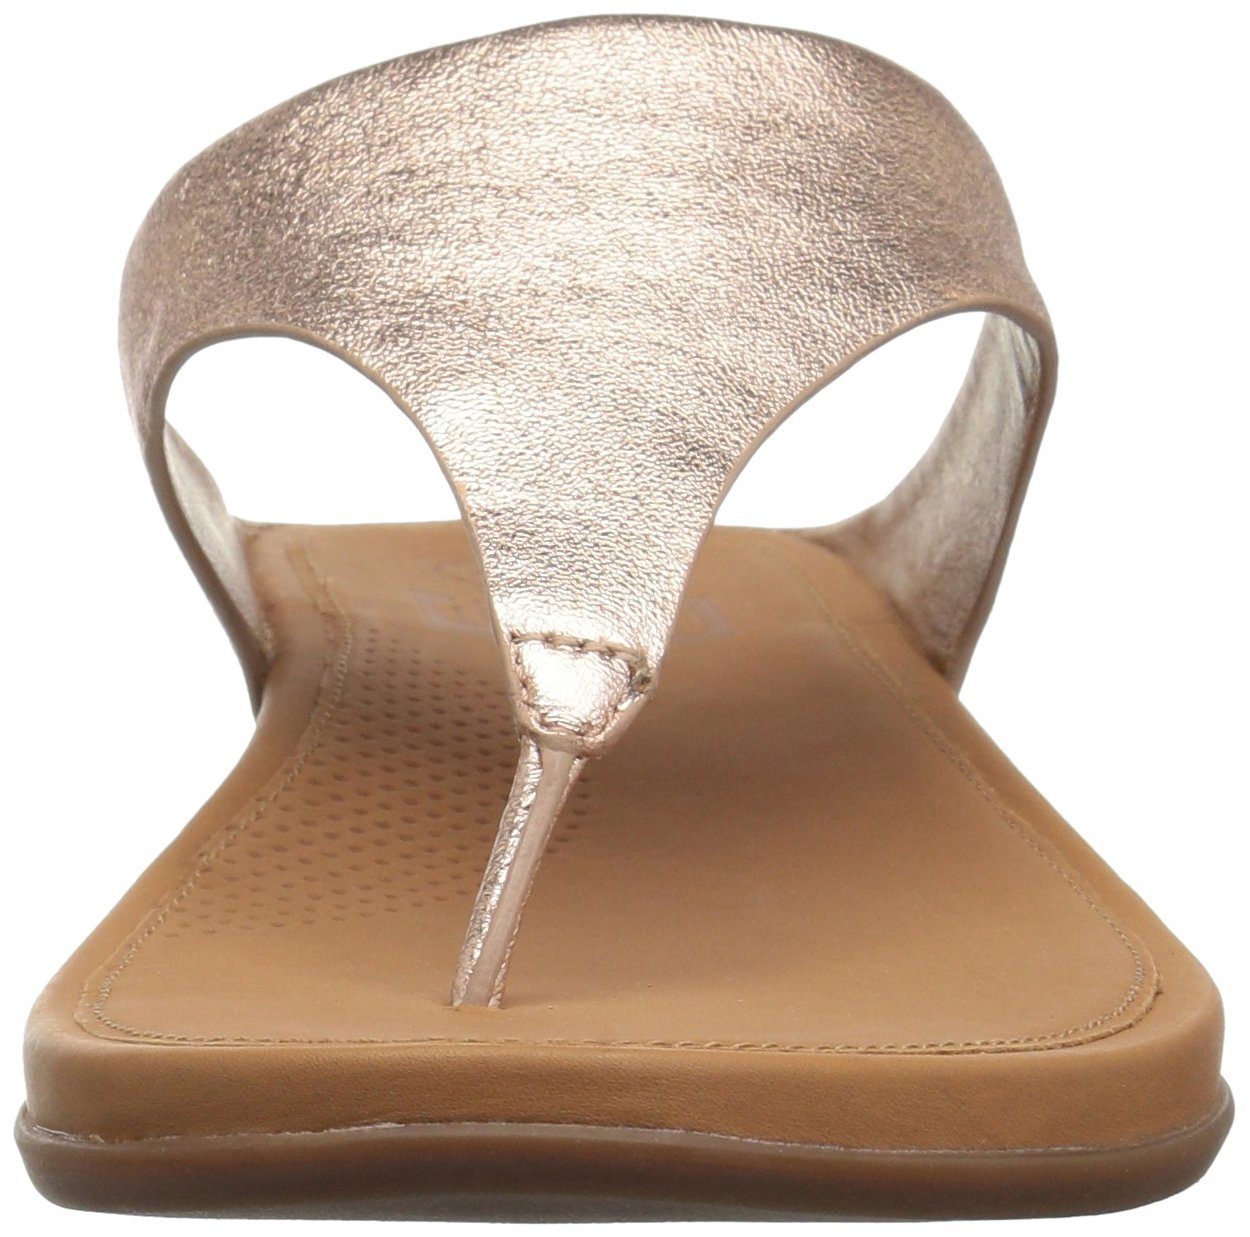 FitFlop Women's Banda B07CNT7Q2G 7 B(M) US|Rose Gold